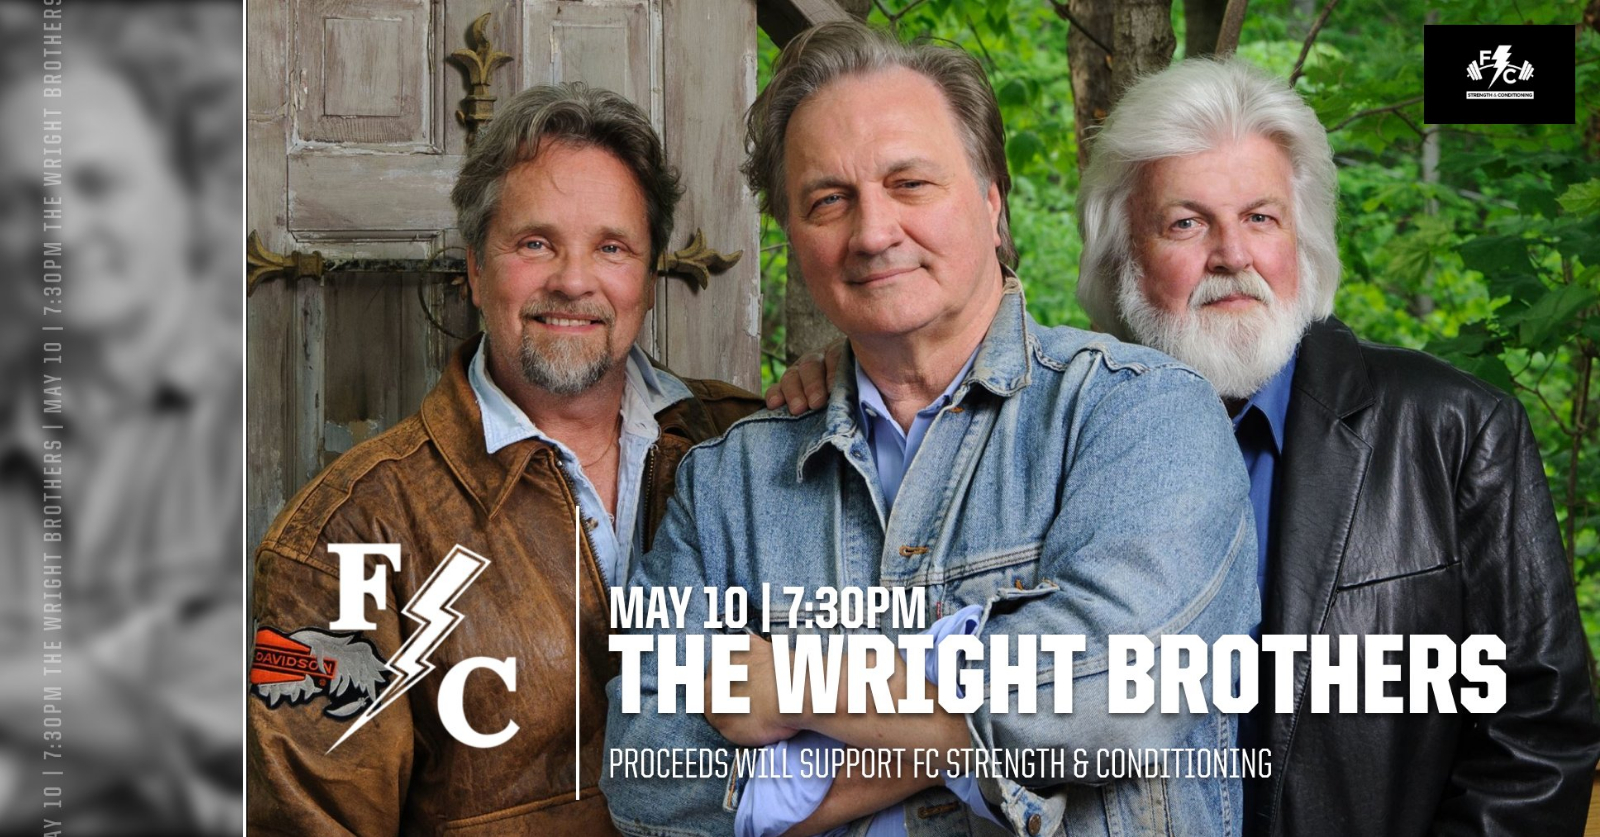 The Wright Brothers Concert – May 10